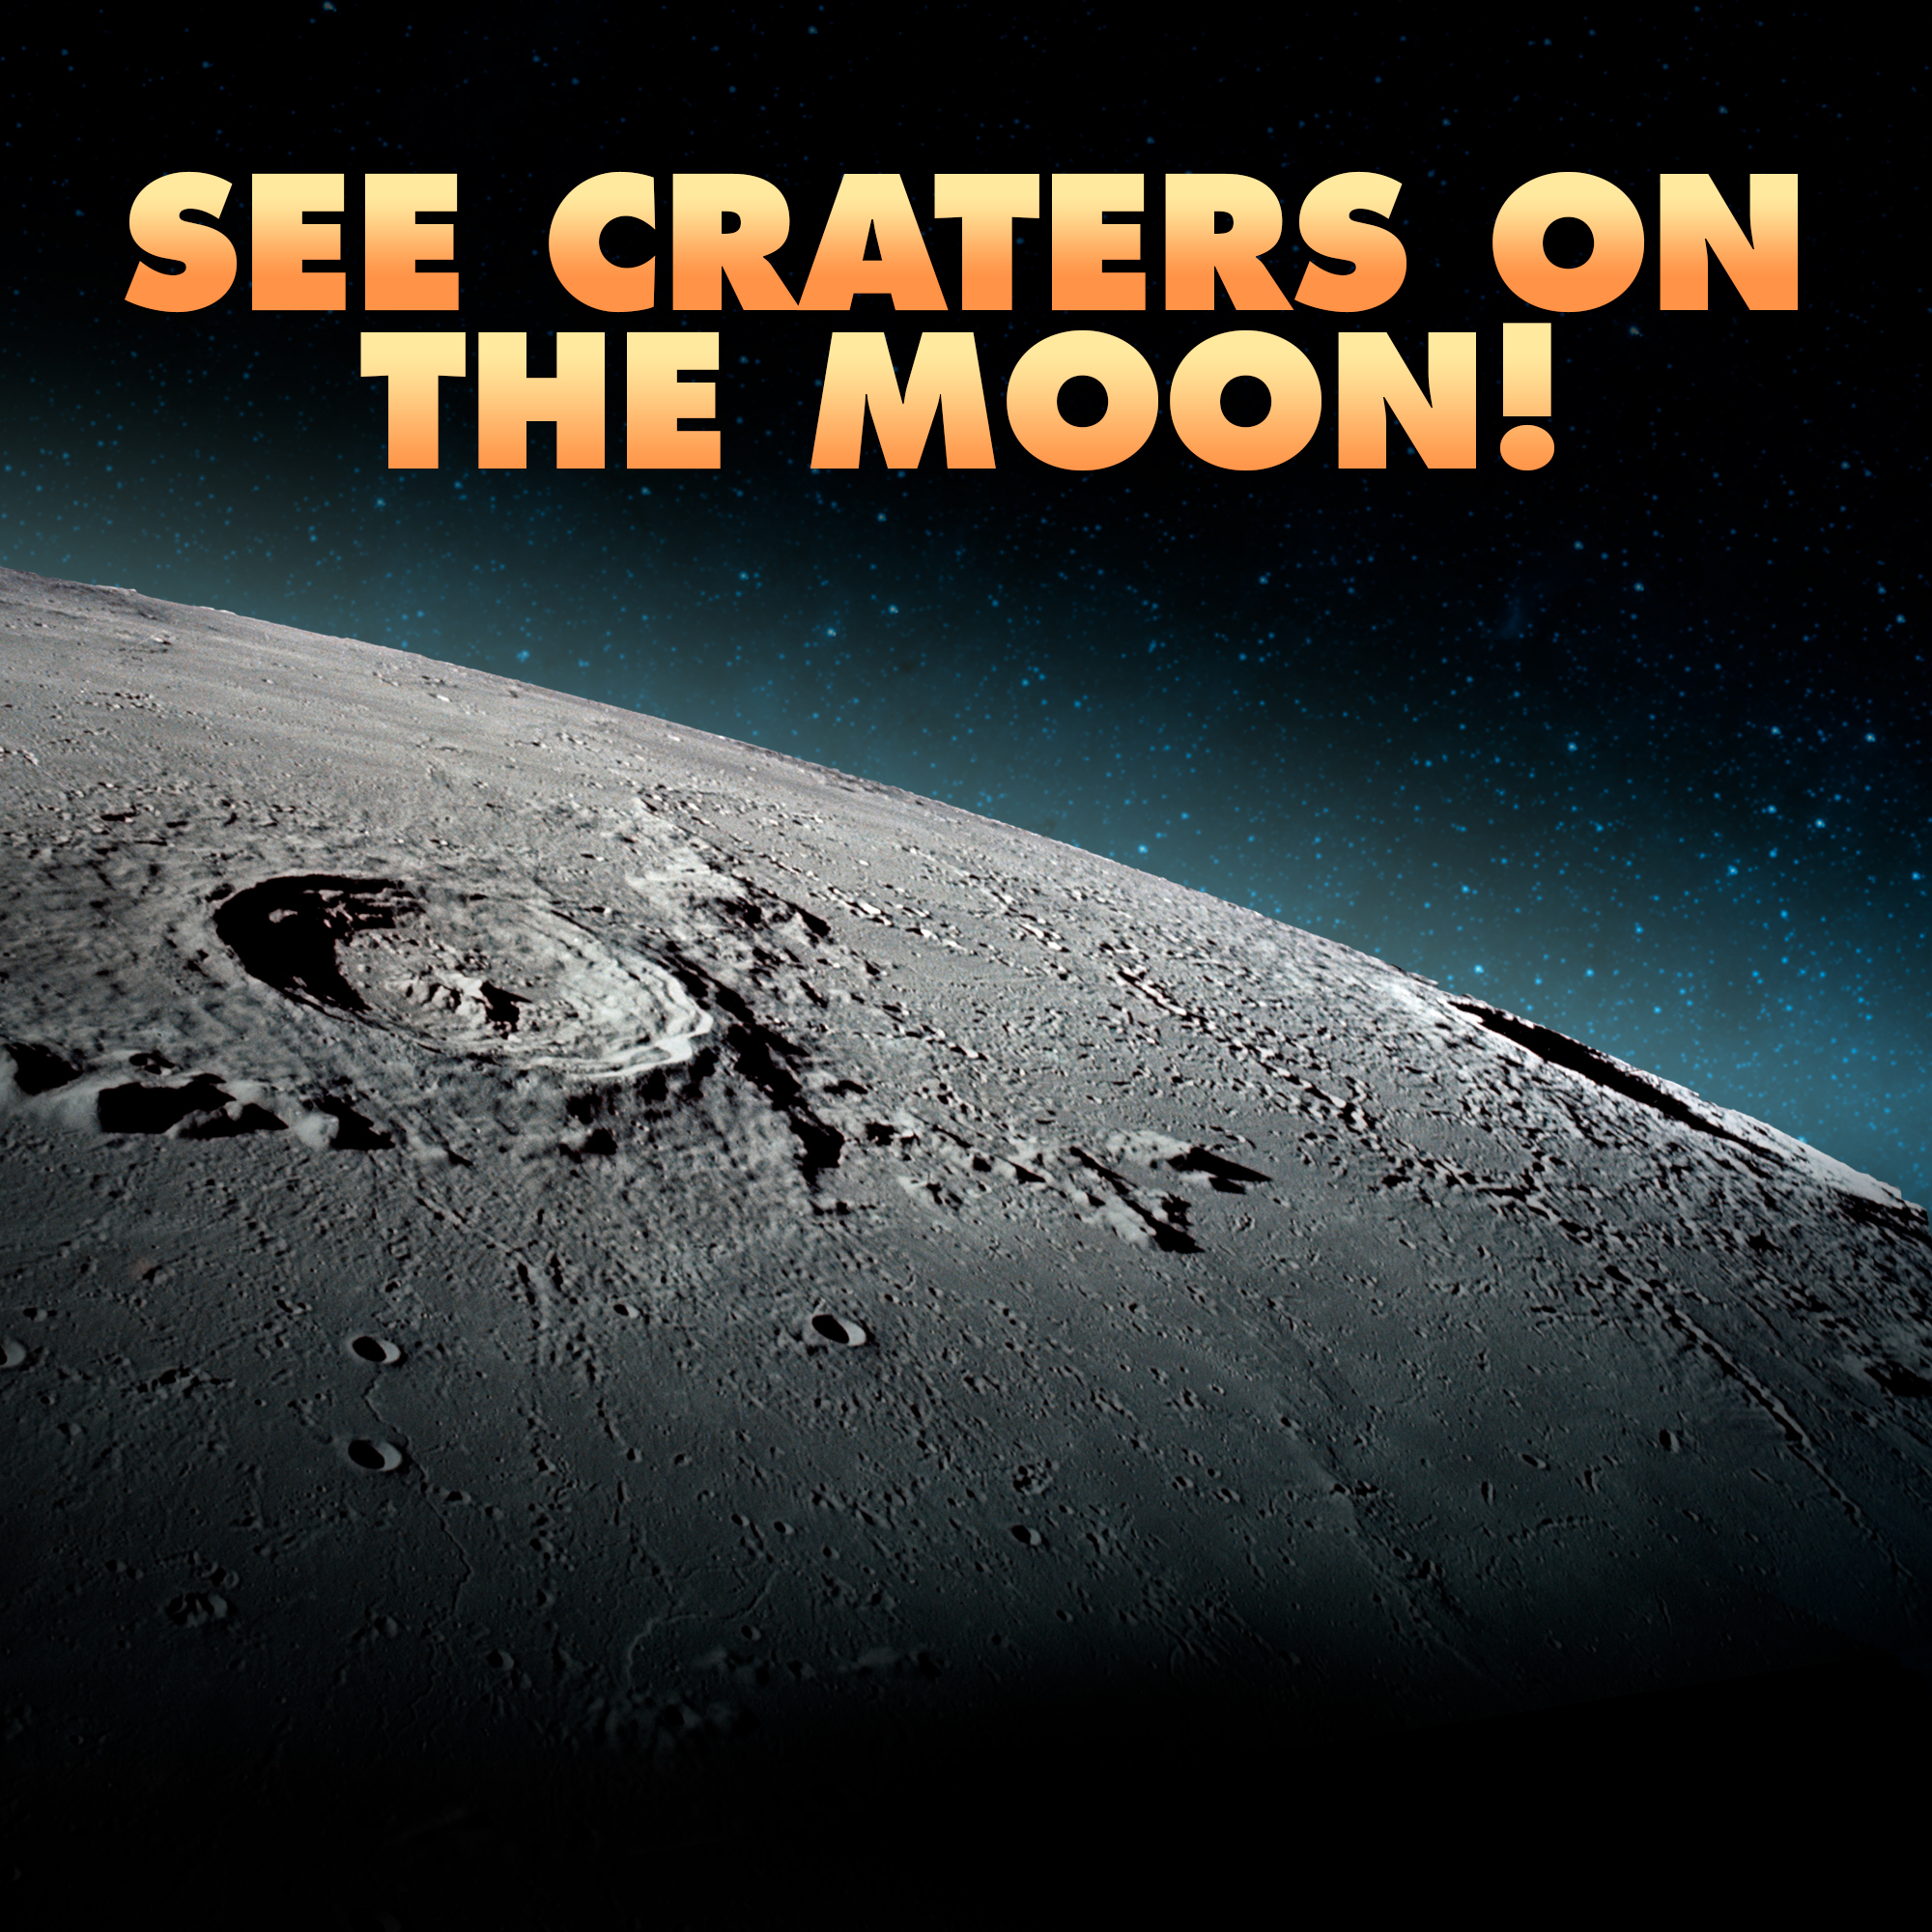 LUNARSCOPE2-See-Craters-on-the-Moon-2